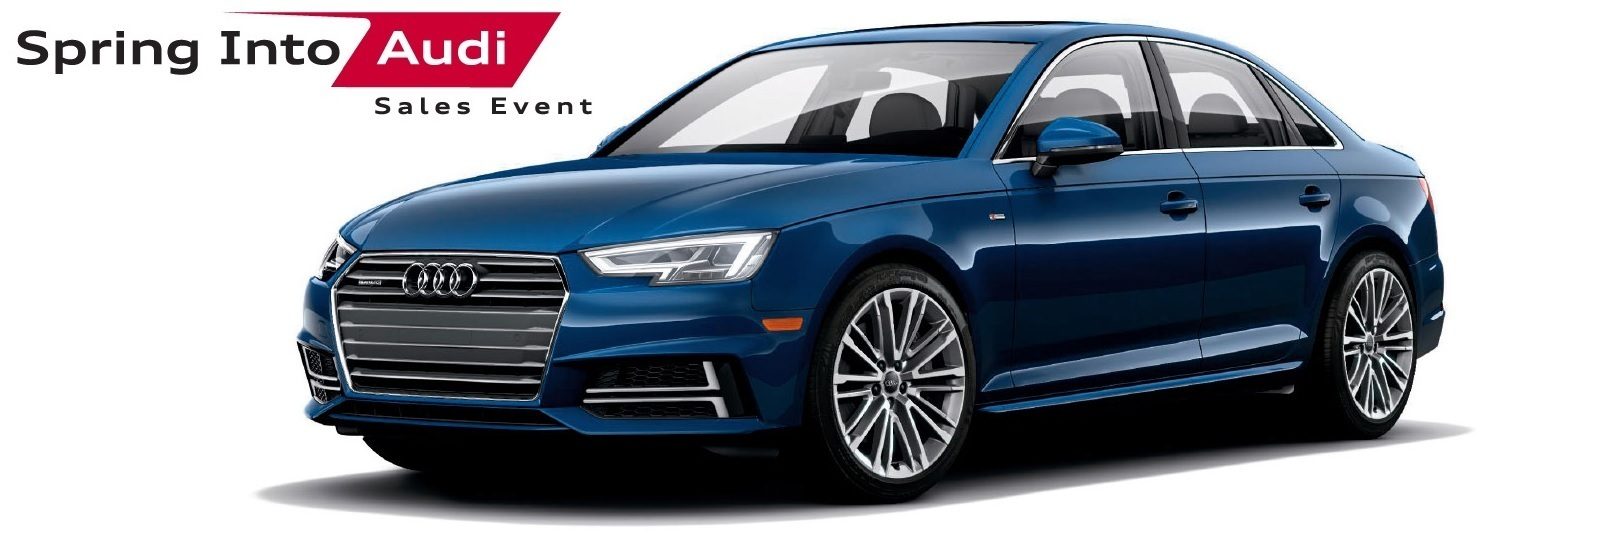 Spring Into Audi Sales Event – A4